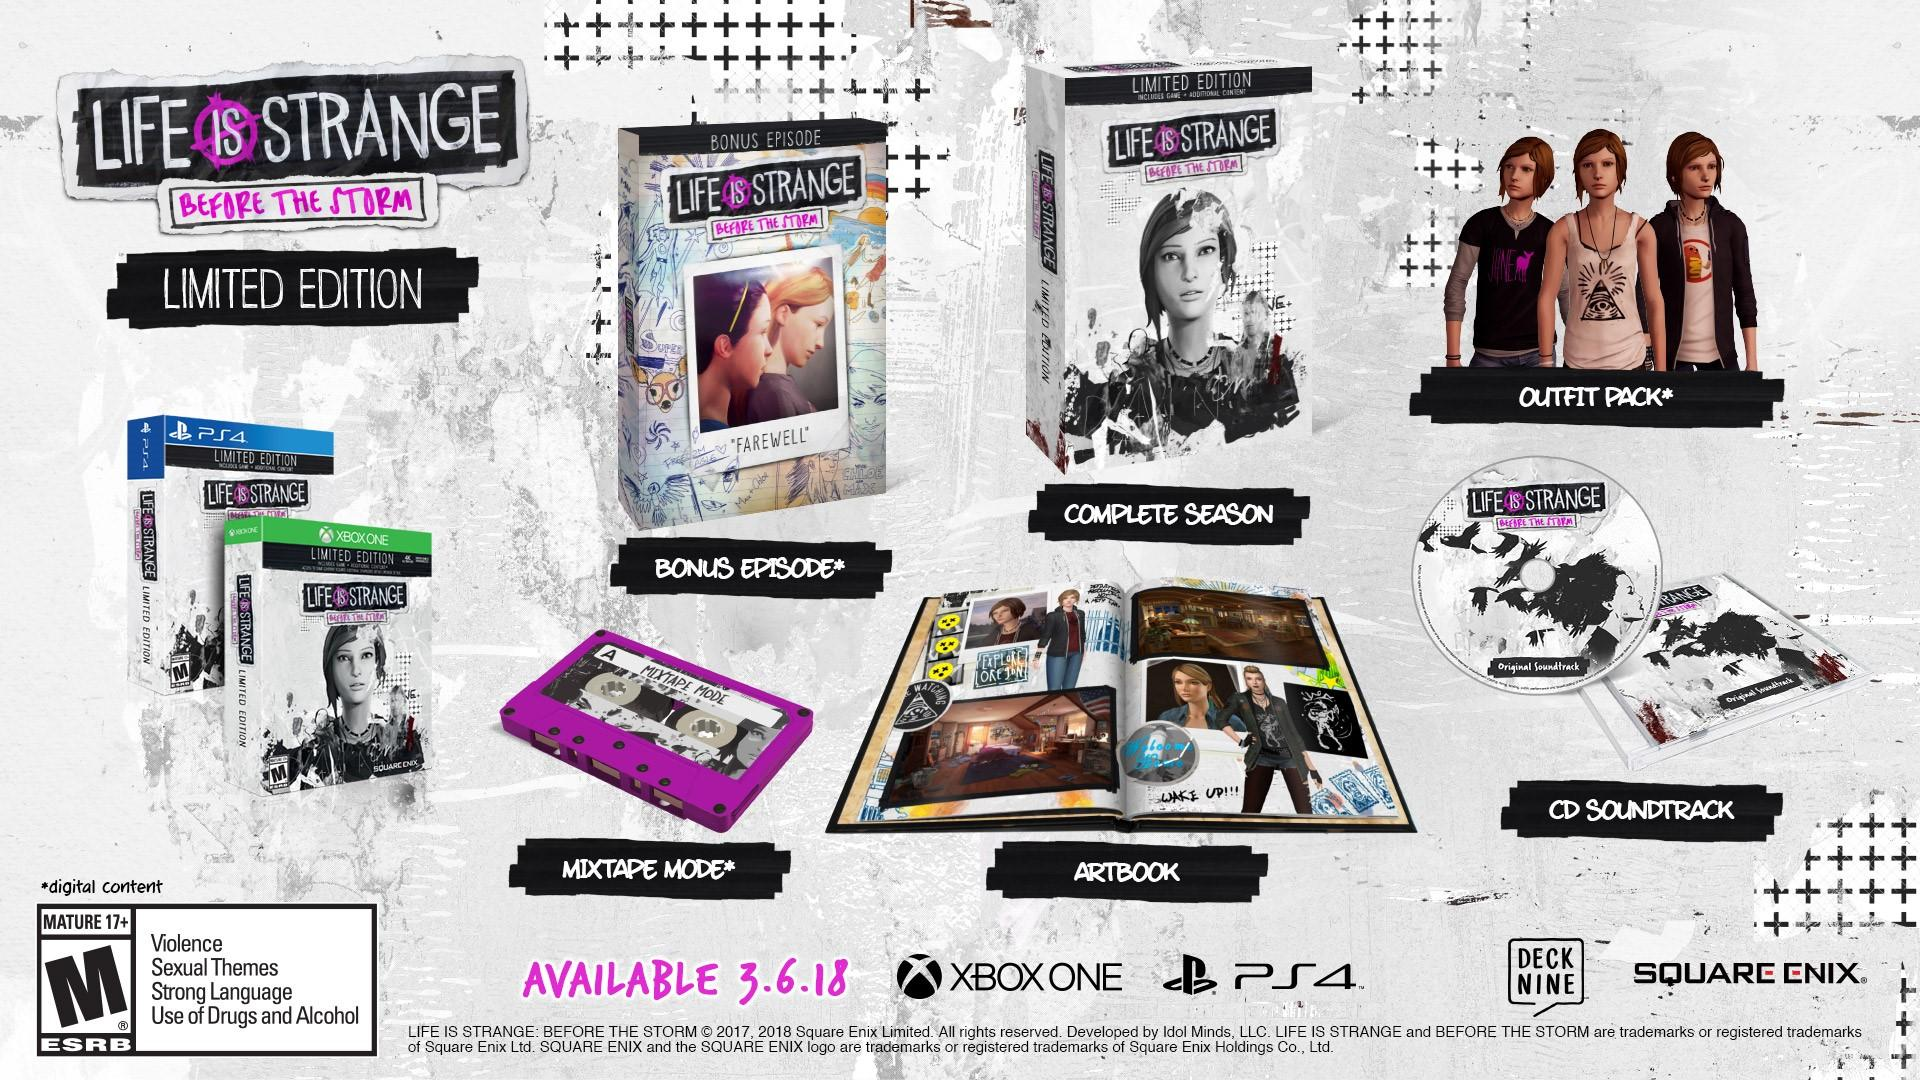 Life Is Strange: Before the Storm (Vinyl Edition)